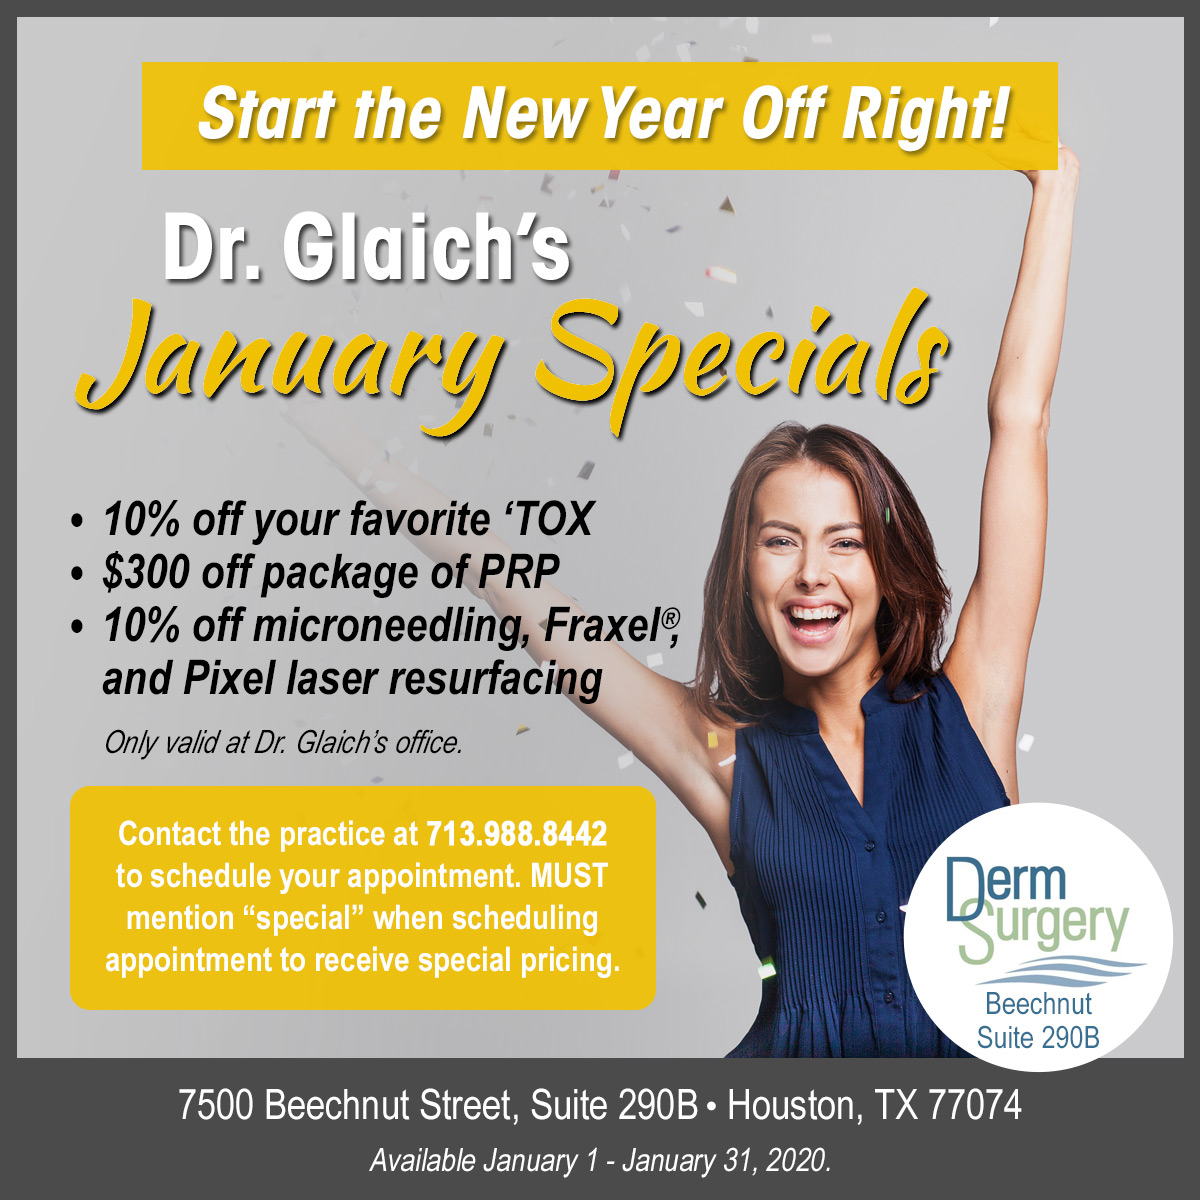 Dr. Glaich's January Special